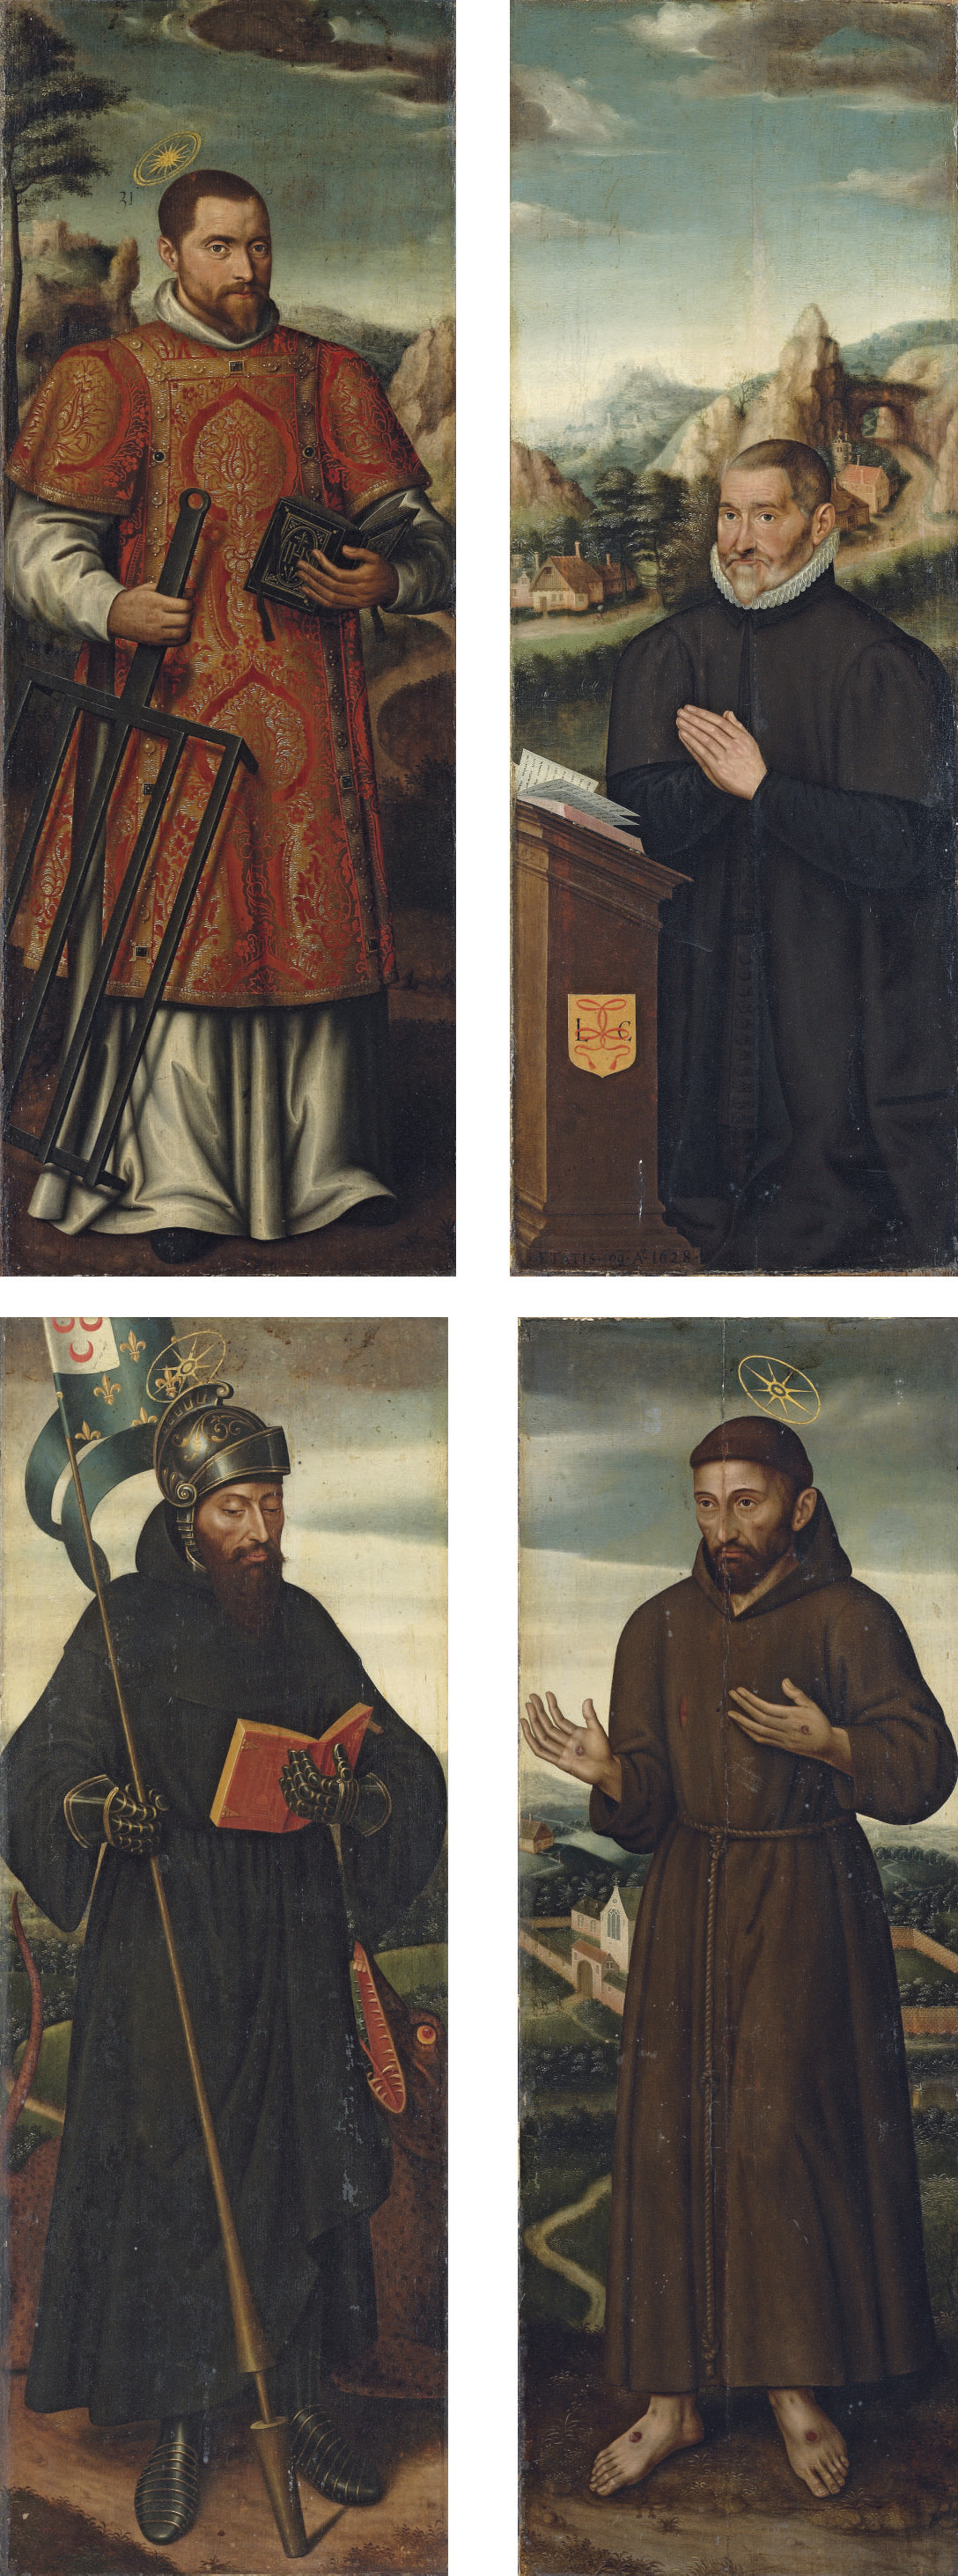 The panels of an altarpiece: Saint Lawrence; Saint George; Saint Francis; and A kneeling donor